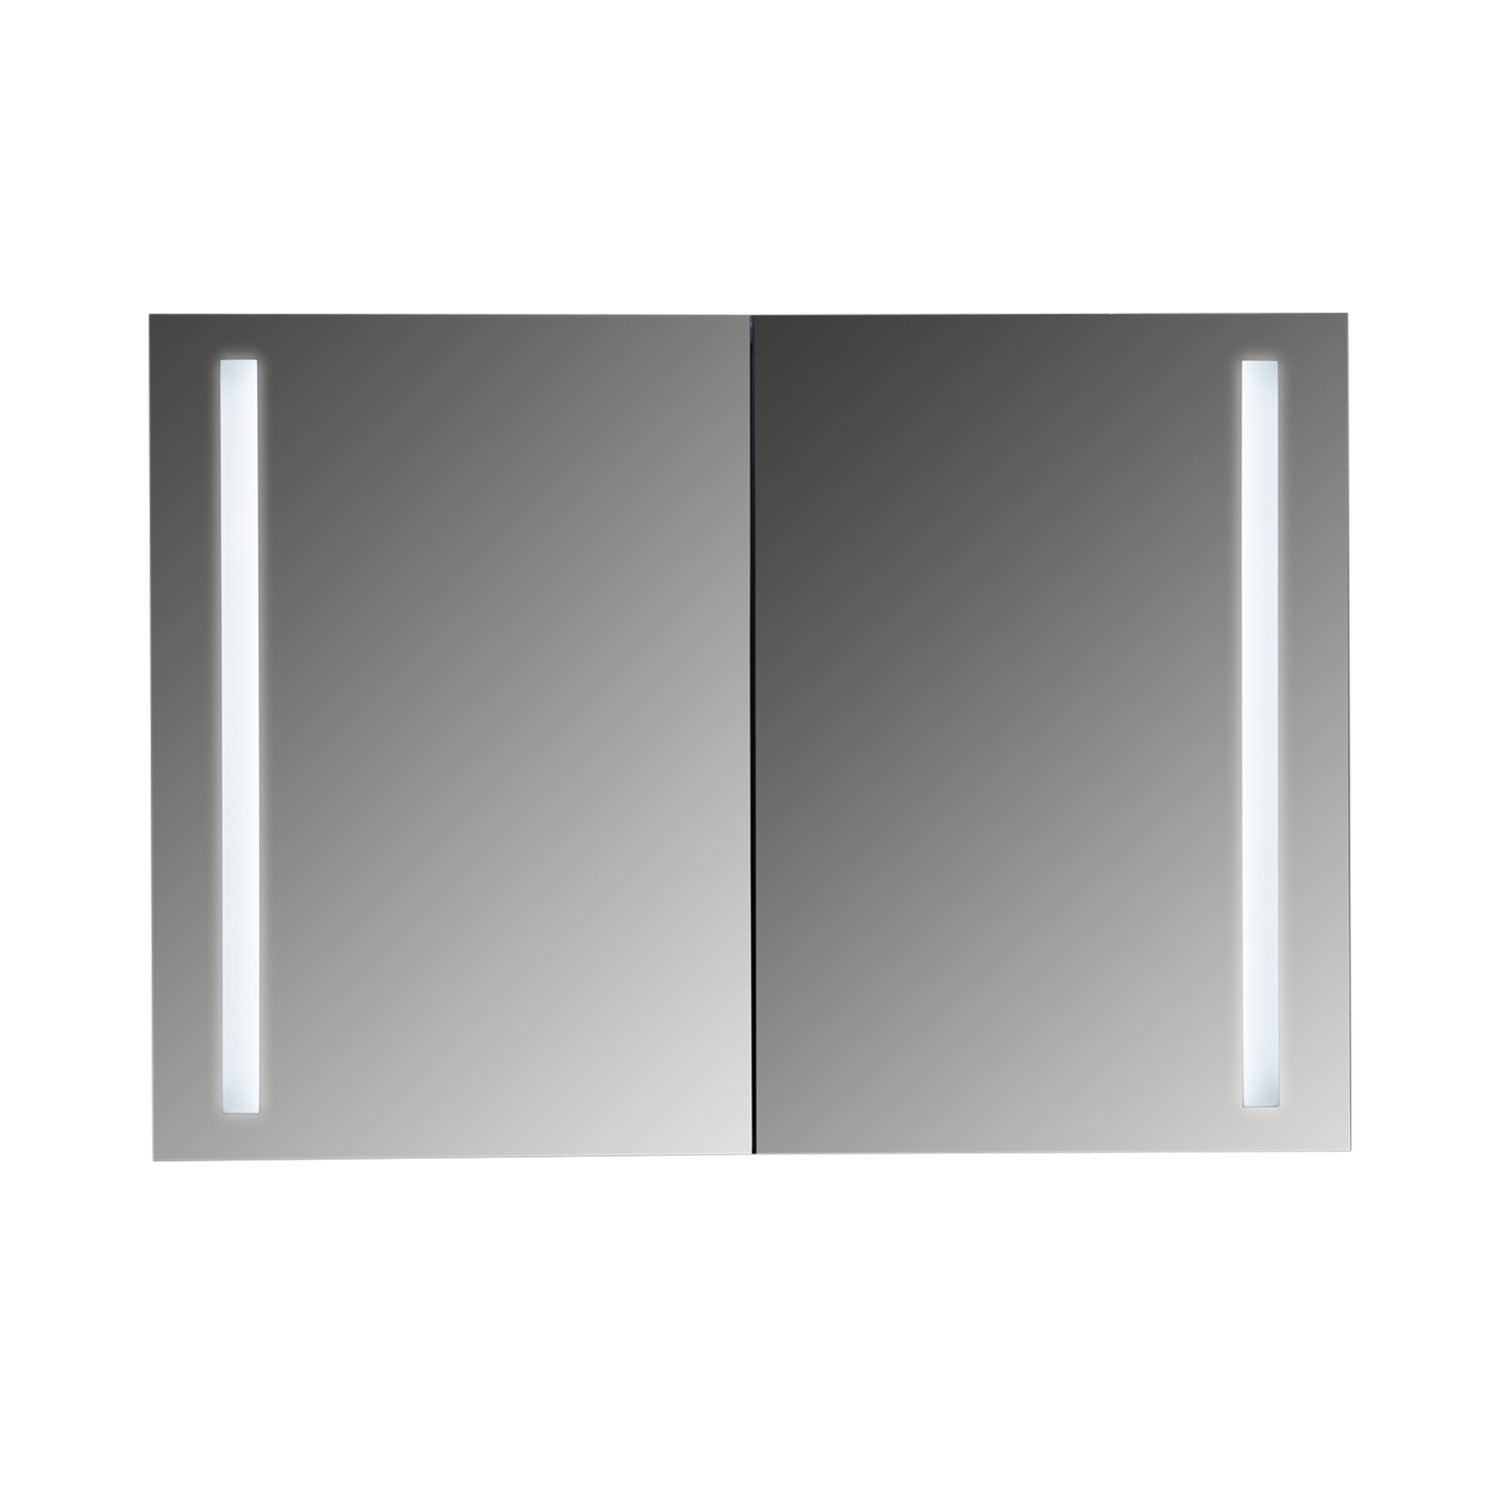 MAYKKE Bailey 40'' W x 28'' H LED Mirror Medicine Cabinet with 2 Doors, Double Door Mirror Cabinet with LED Lighting, Wall Mounted Lighted Bathroom Vanity Mirror UL Certified, LMA1104001 by Maykke